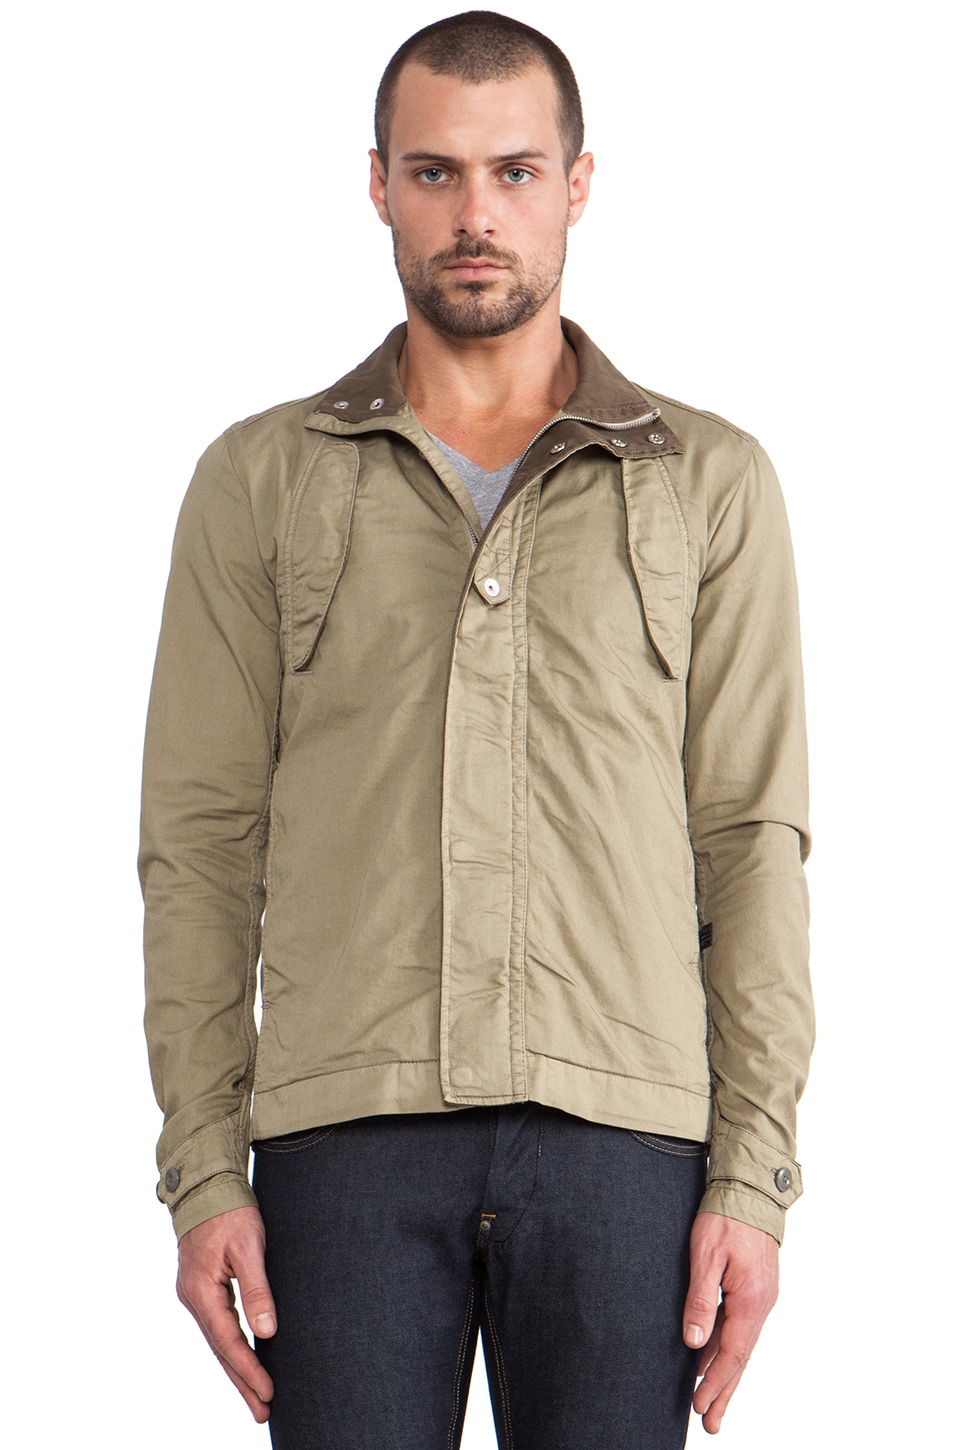 G-Star Benin Overshirt Premium in Army Green